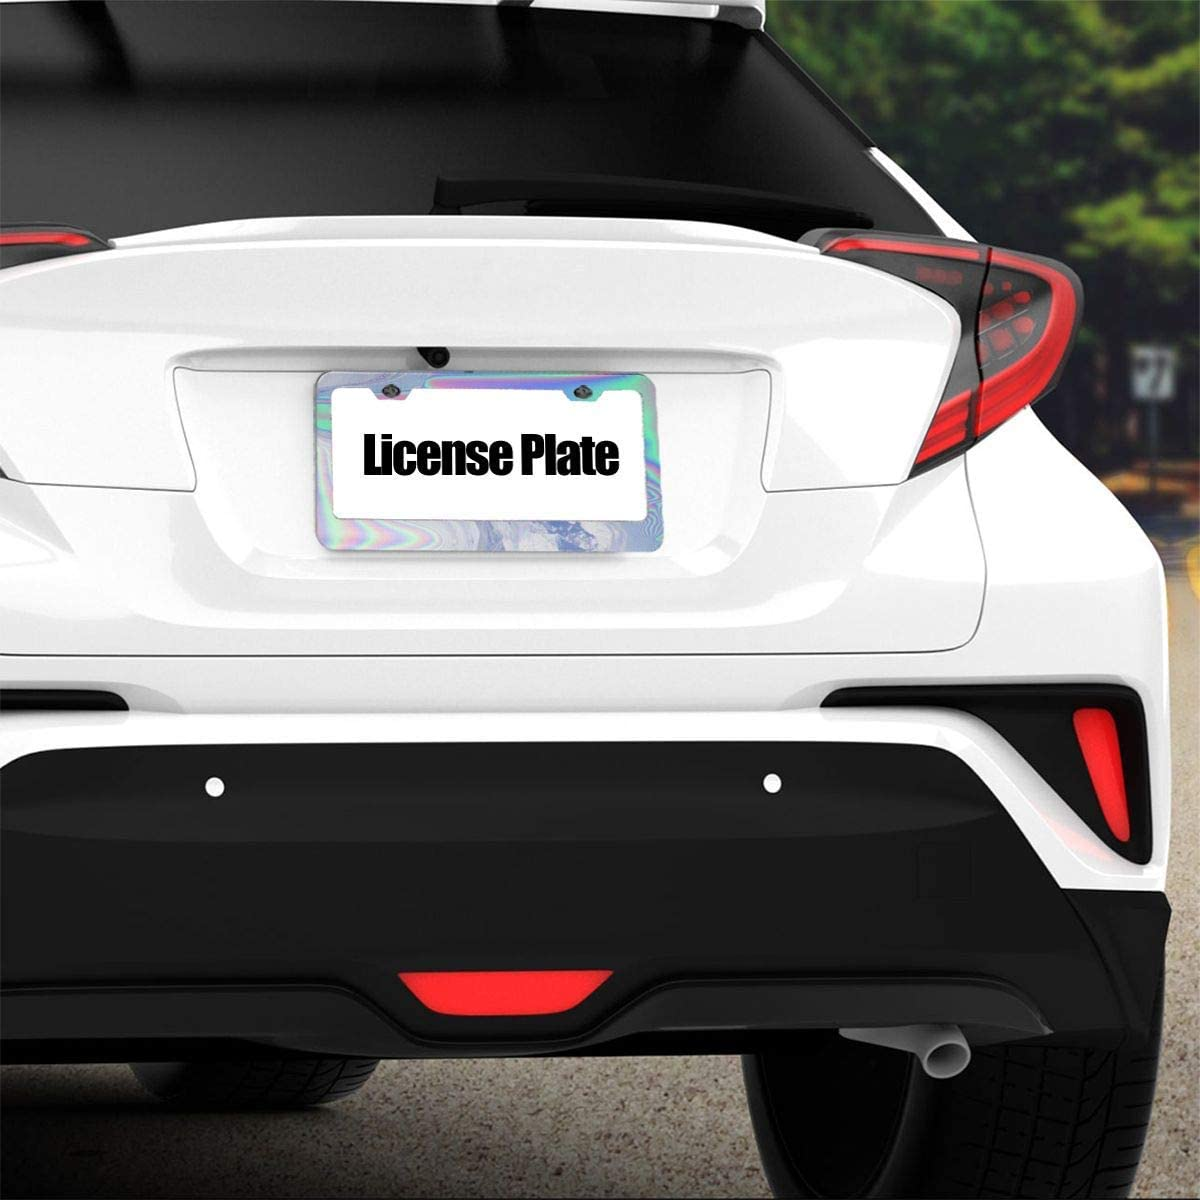 4 Holes and Screws Novelty Car Tag Frame Humor Funny License Plate Cover Holder for US Vehicles MEVZKTN 12x 6 Tag Holder Black License Plate Frame